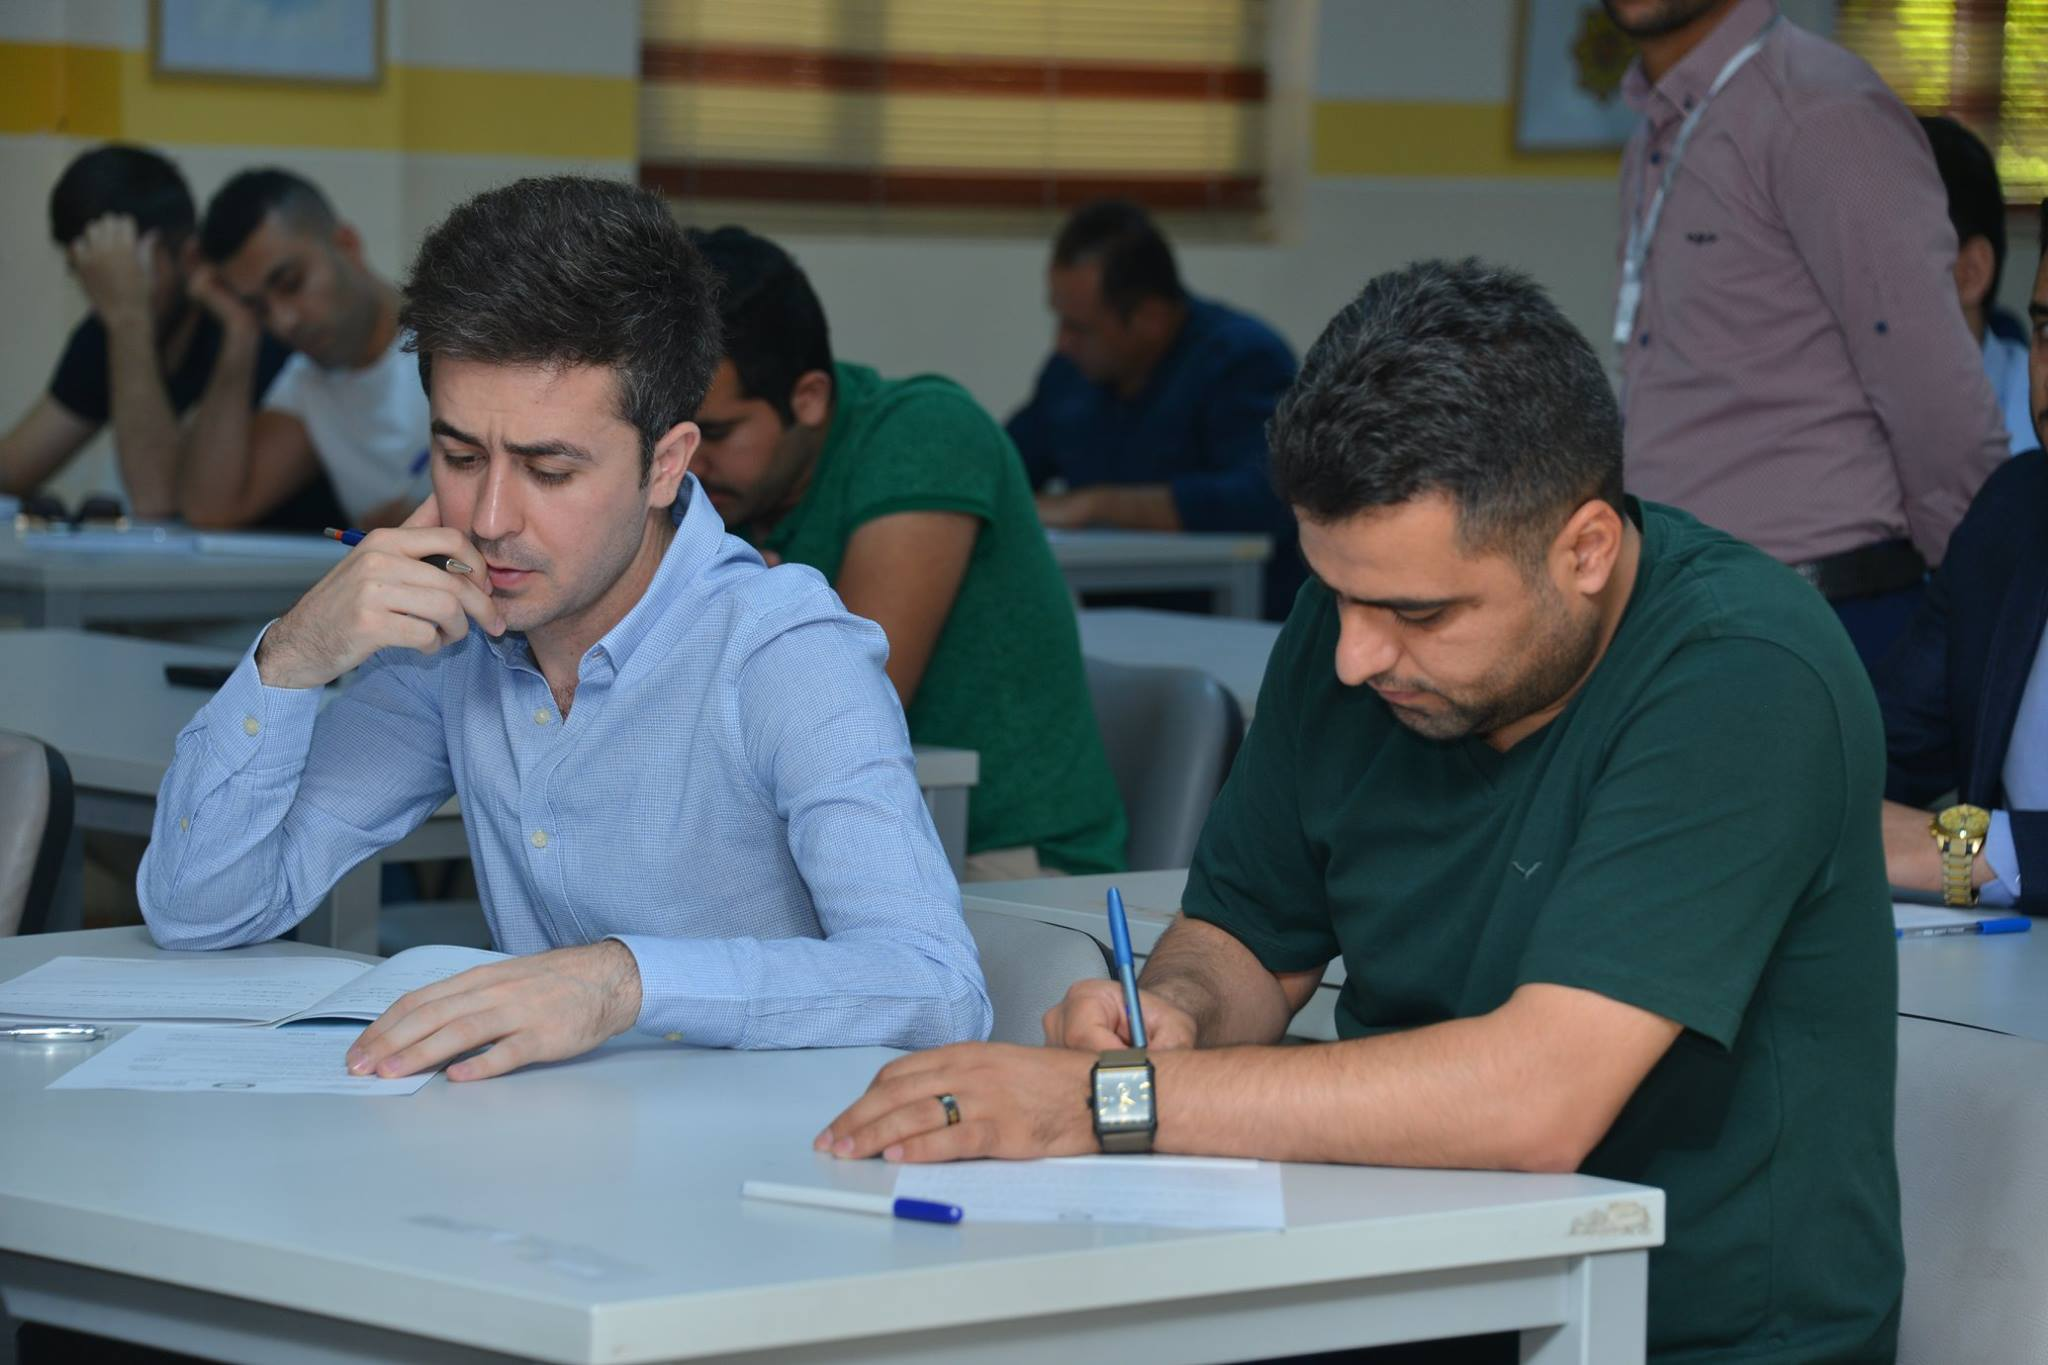 Student doing exam in Cihan University-Erbil